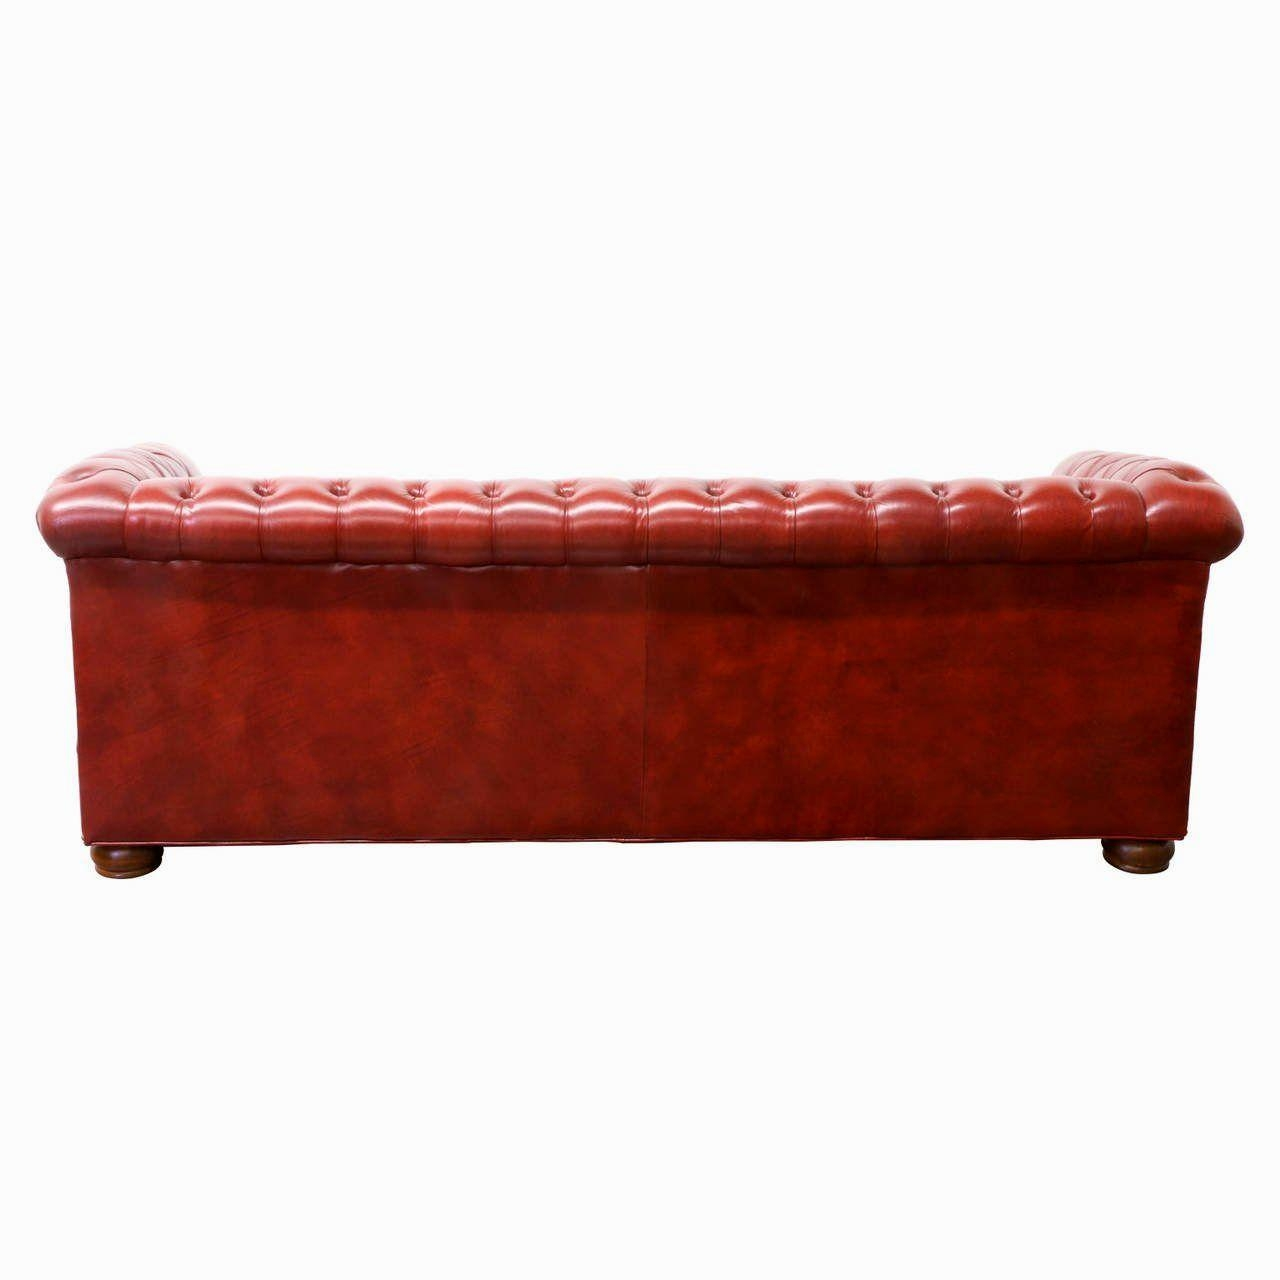 Red Chesterfield Sofa 6 | Best Home Decor Ideas Intended For Red Leather Chesterfield Sofas (Image 6 of 20)